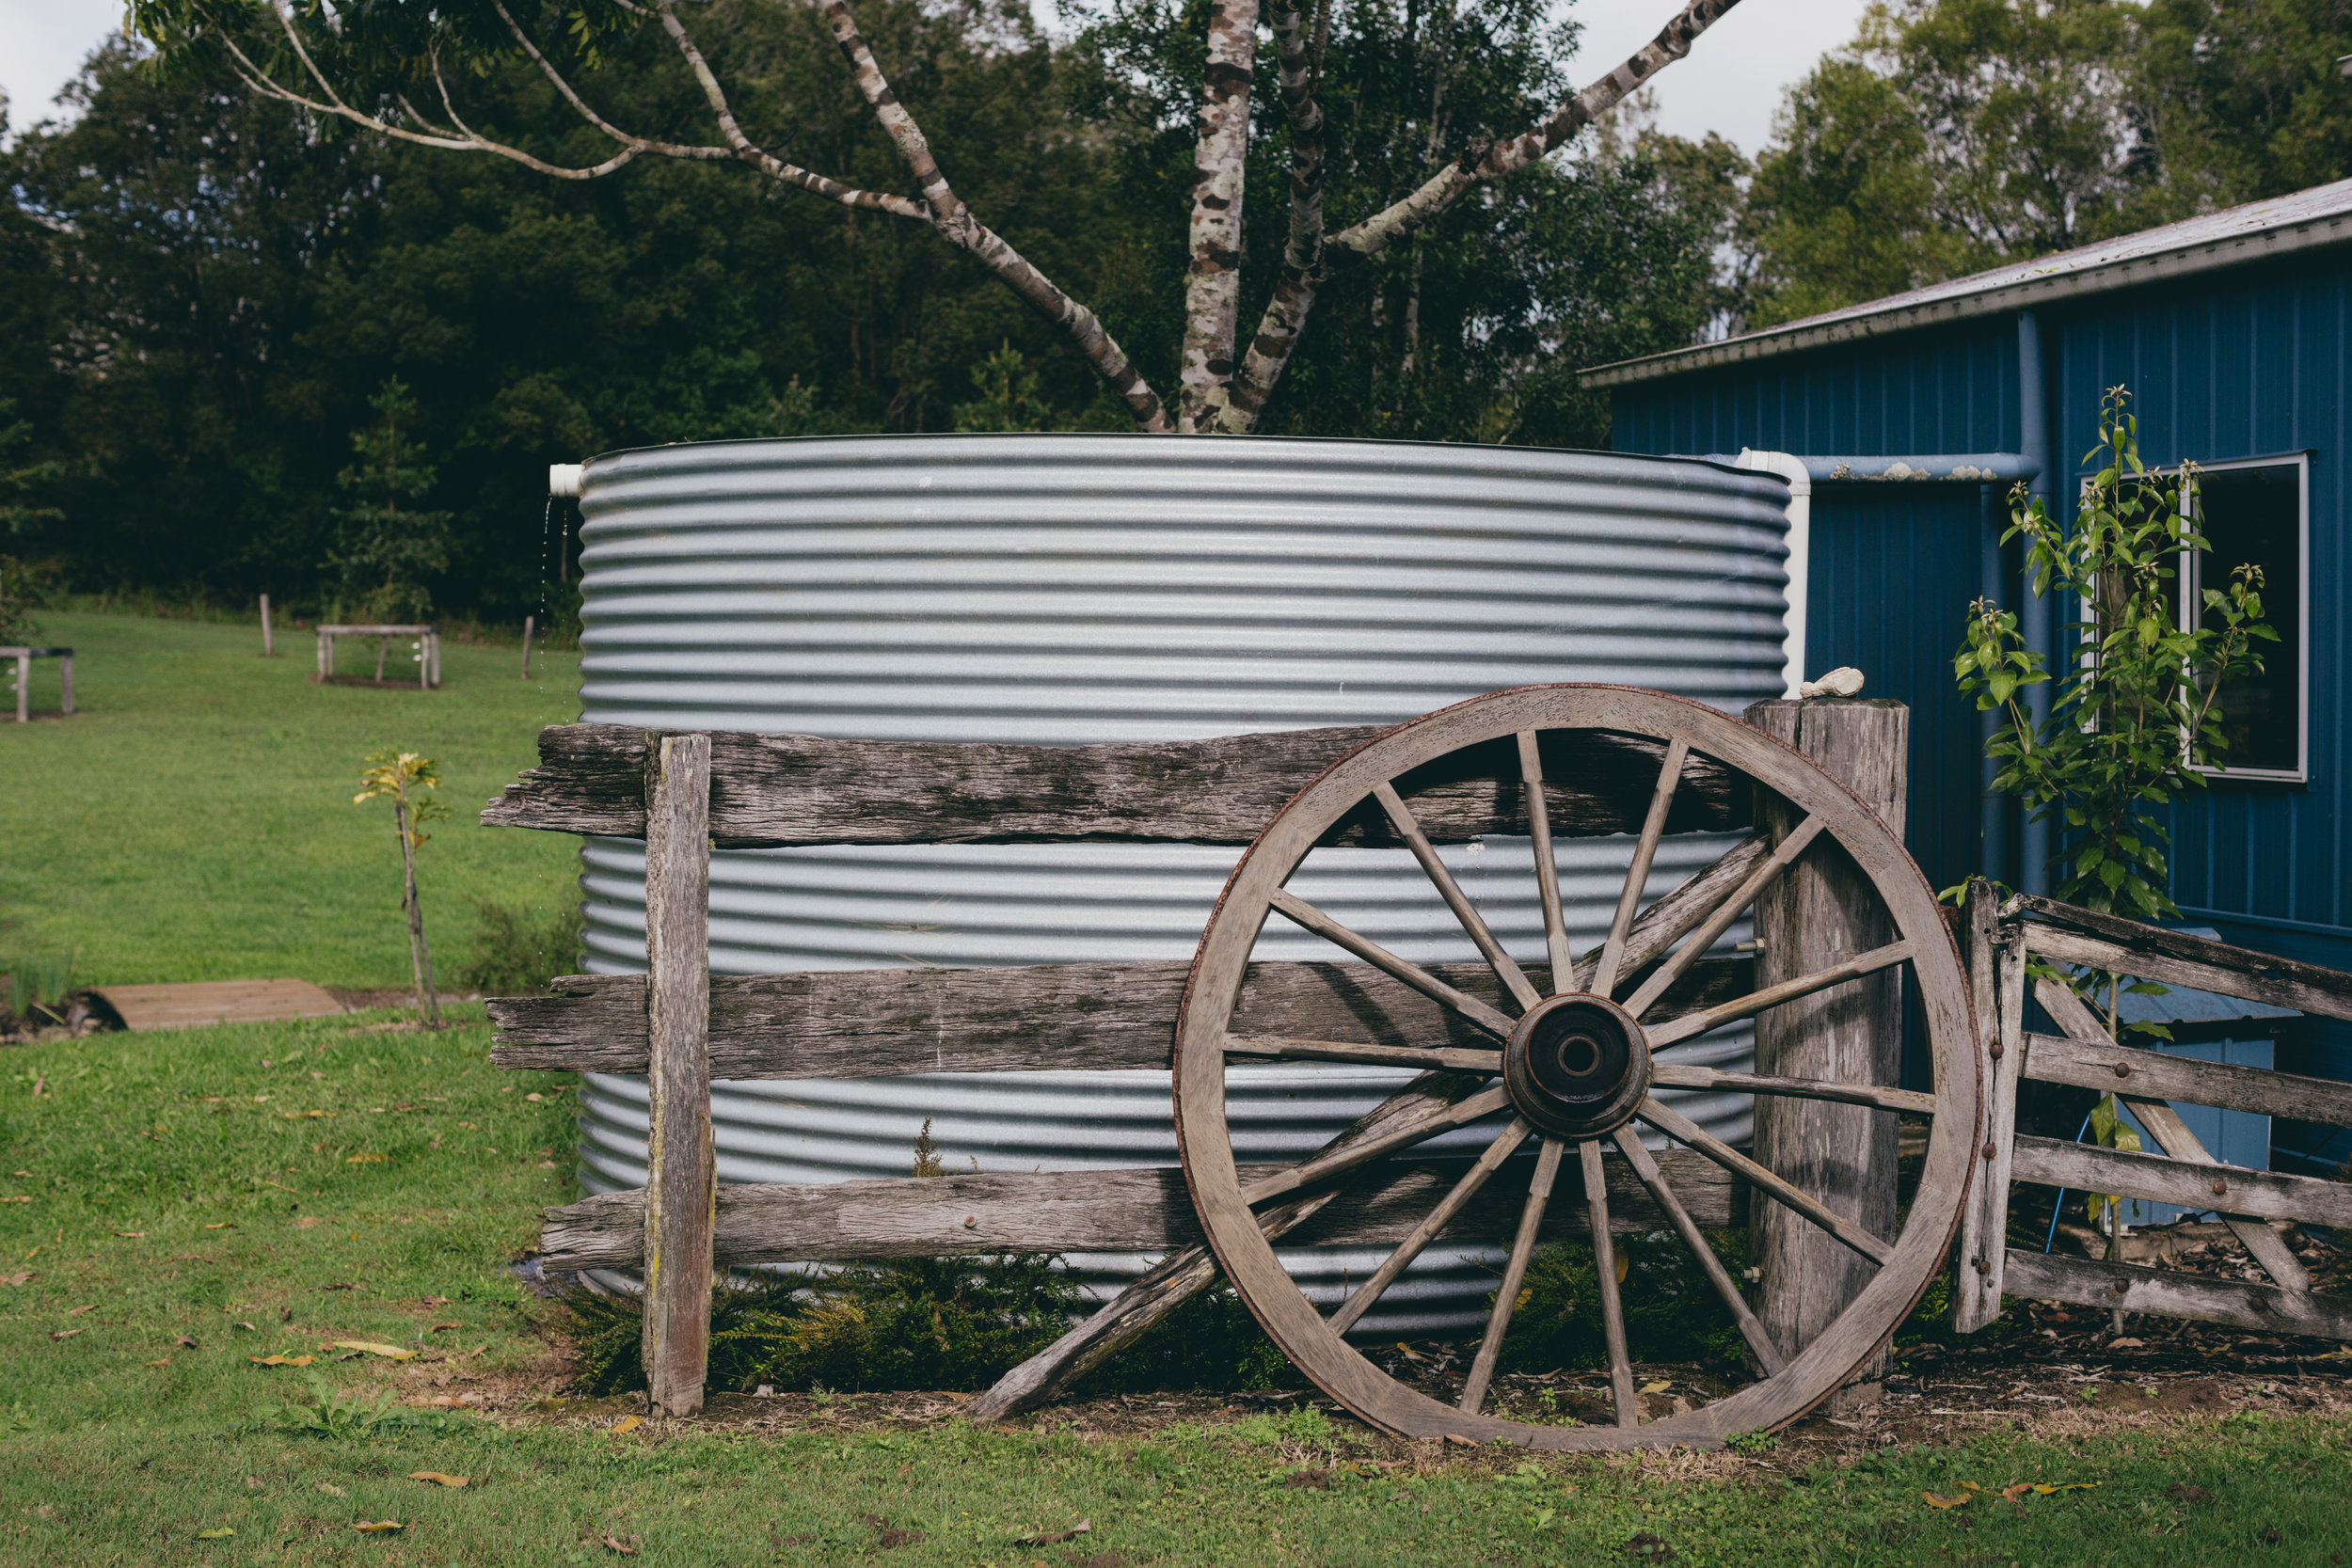 Water tank fenced with wooden slats, old wagon wheel leaning against the fence.